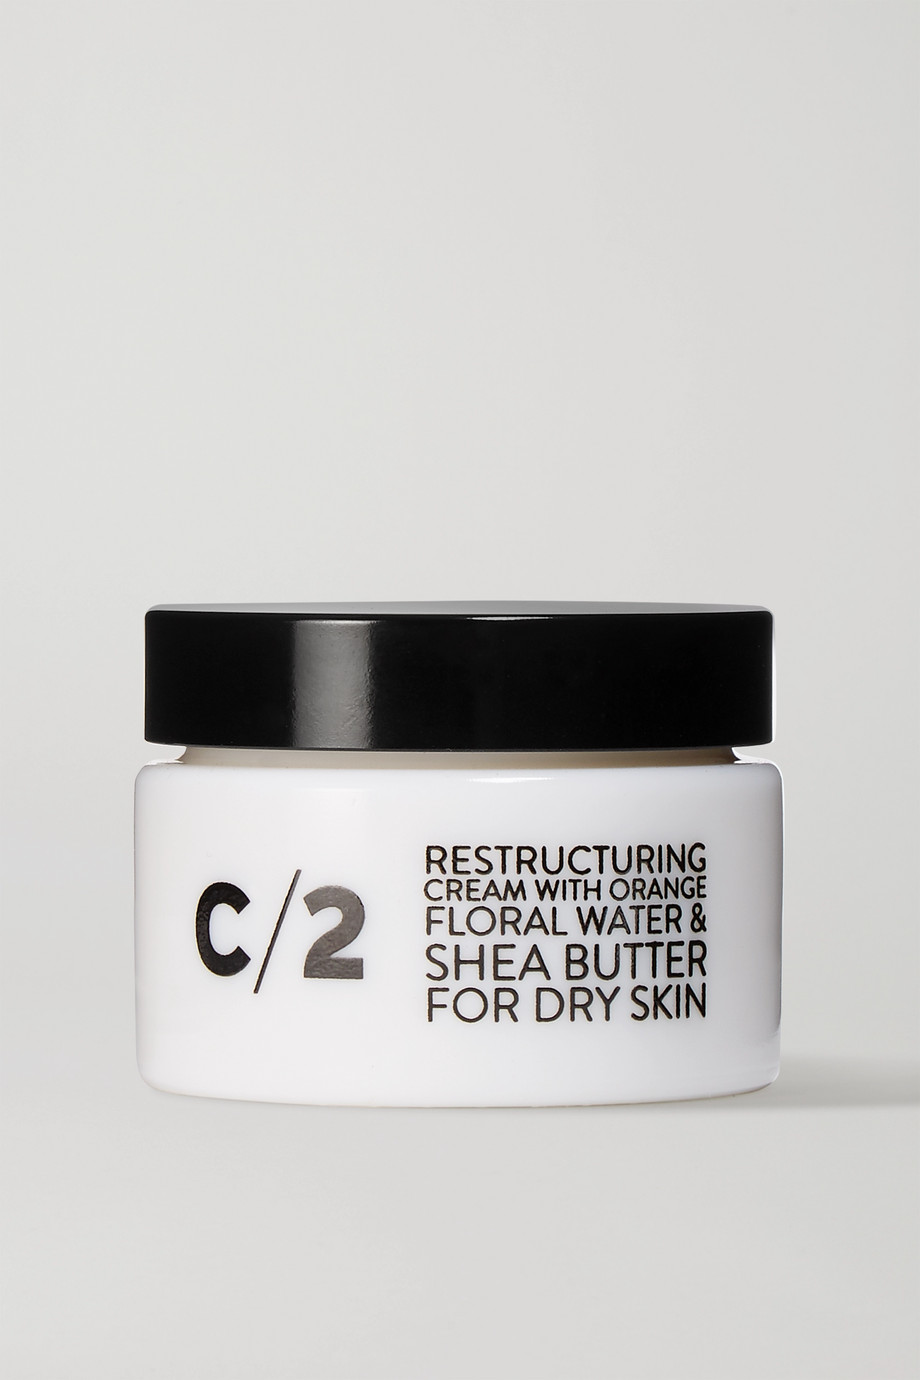 Cosmydor + NET SUSTAIN C/2 Restructuring Cream with Orange Floral Water & Shea Butter, 50ml